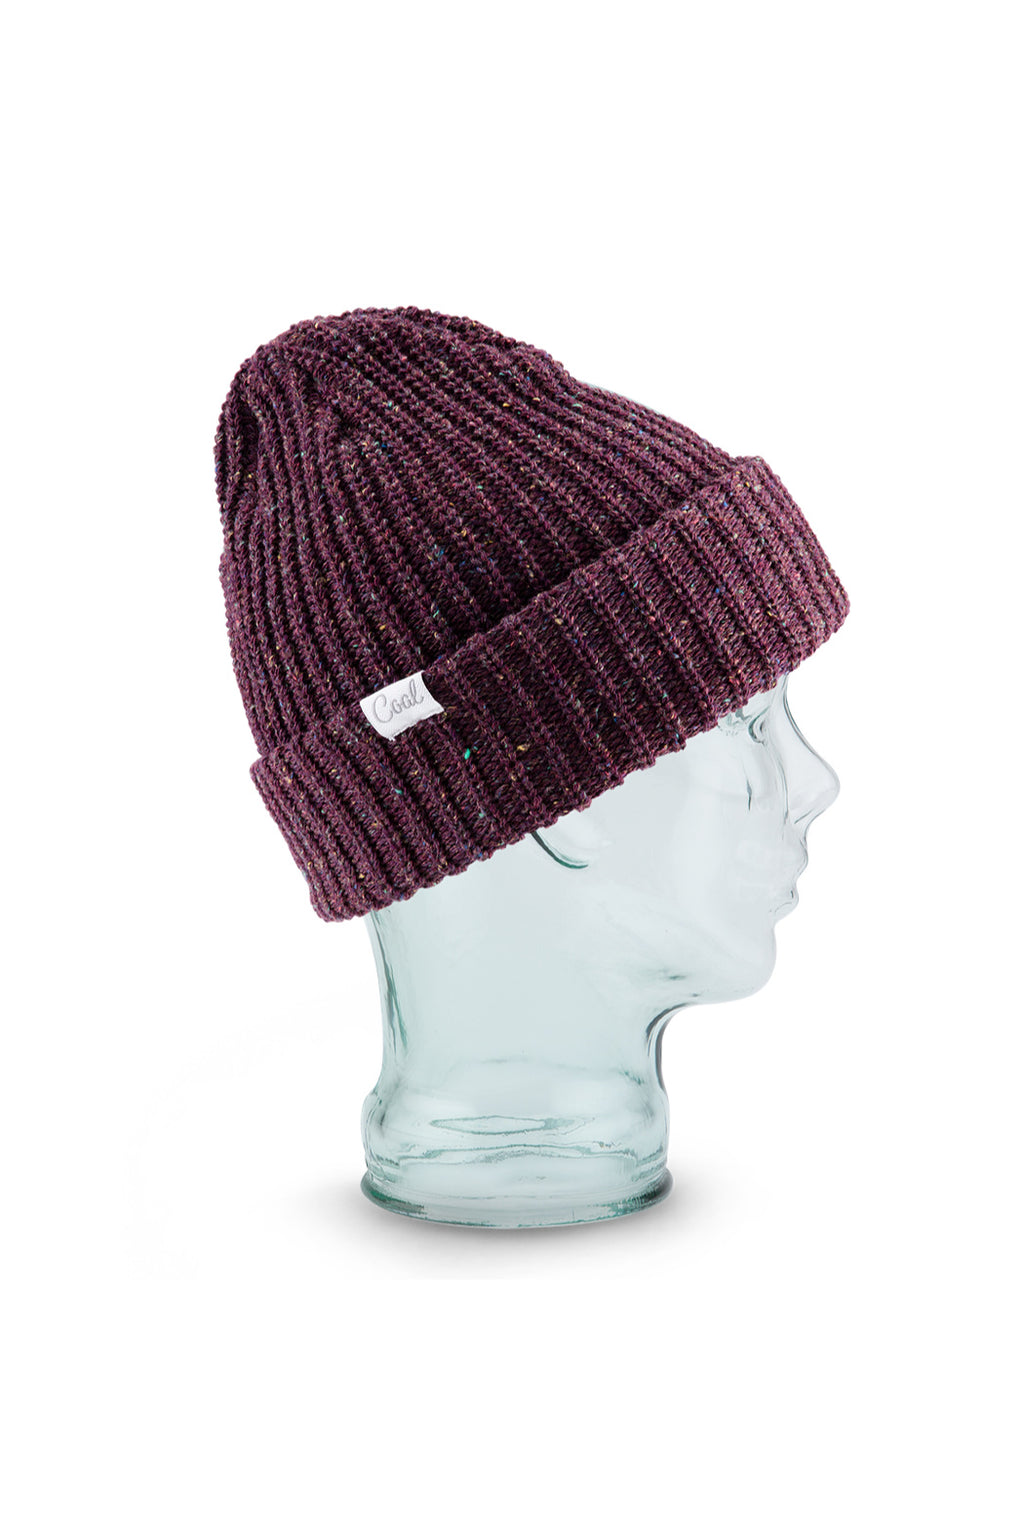 Coal Edith Beanie in Plum